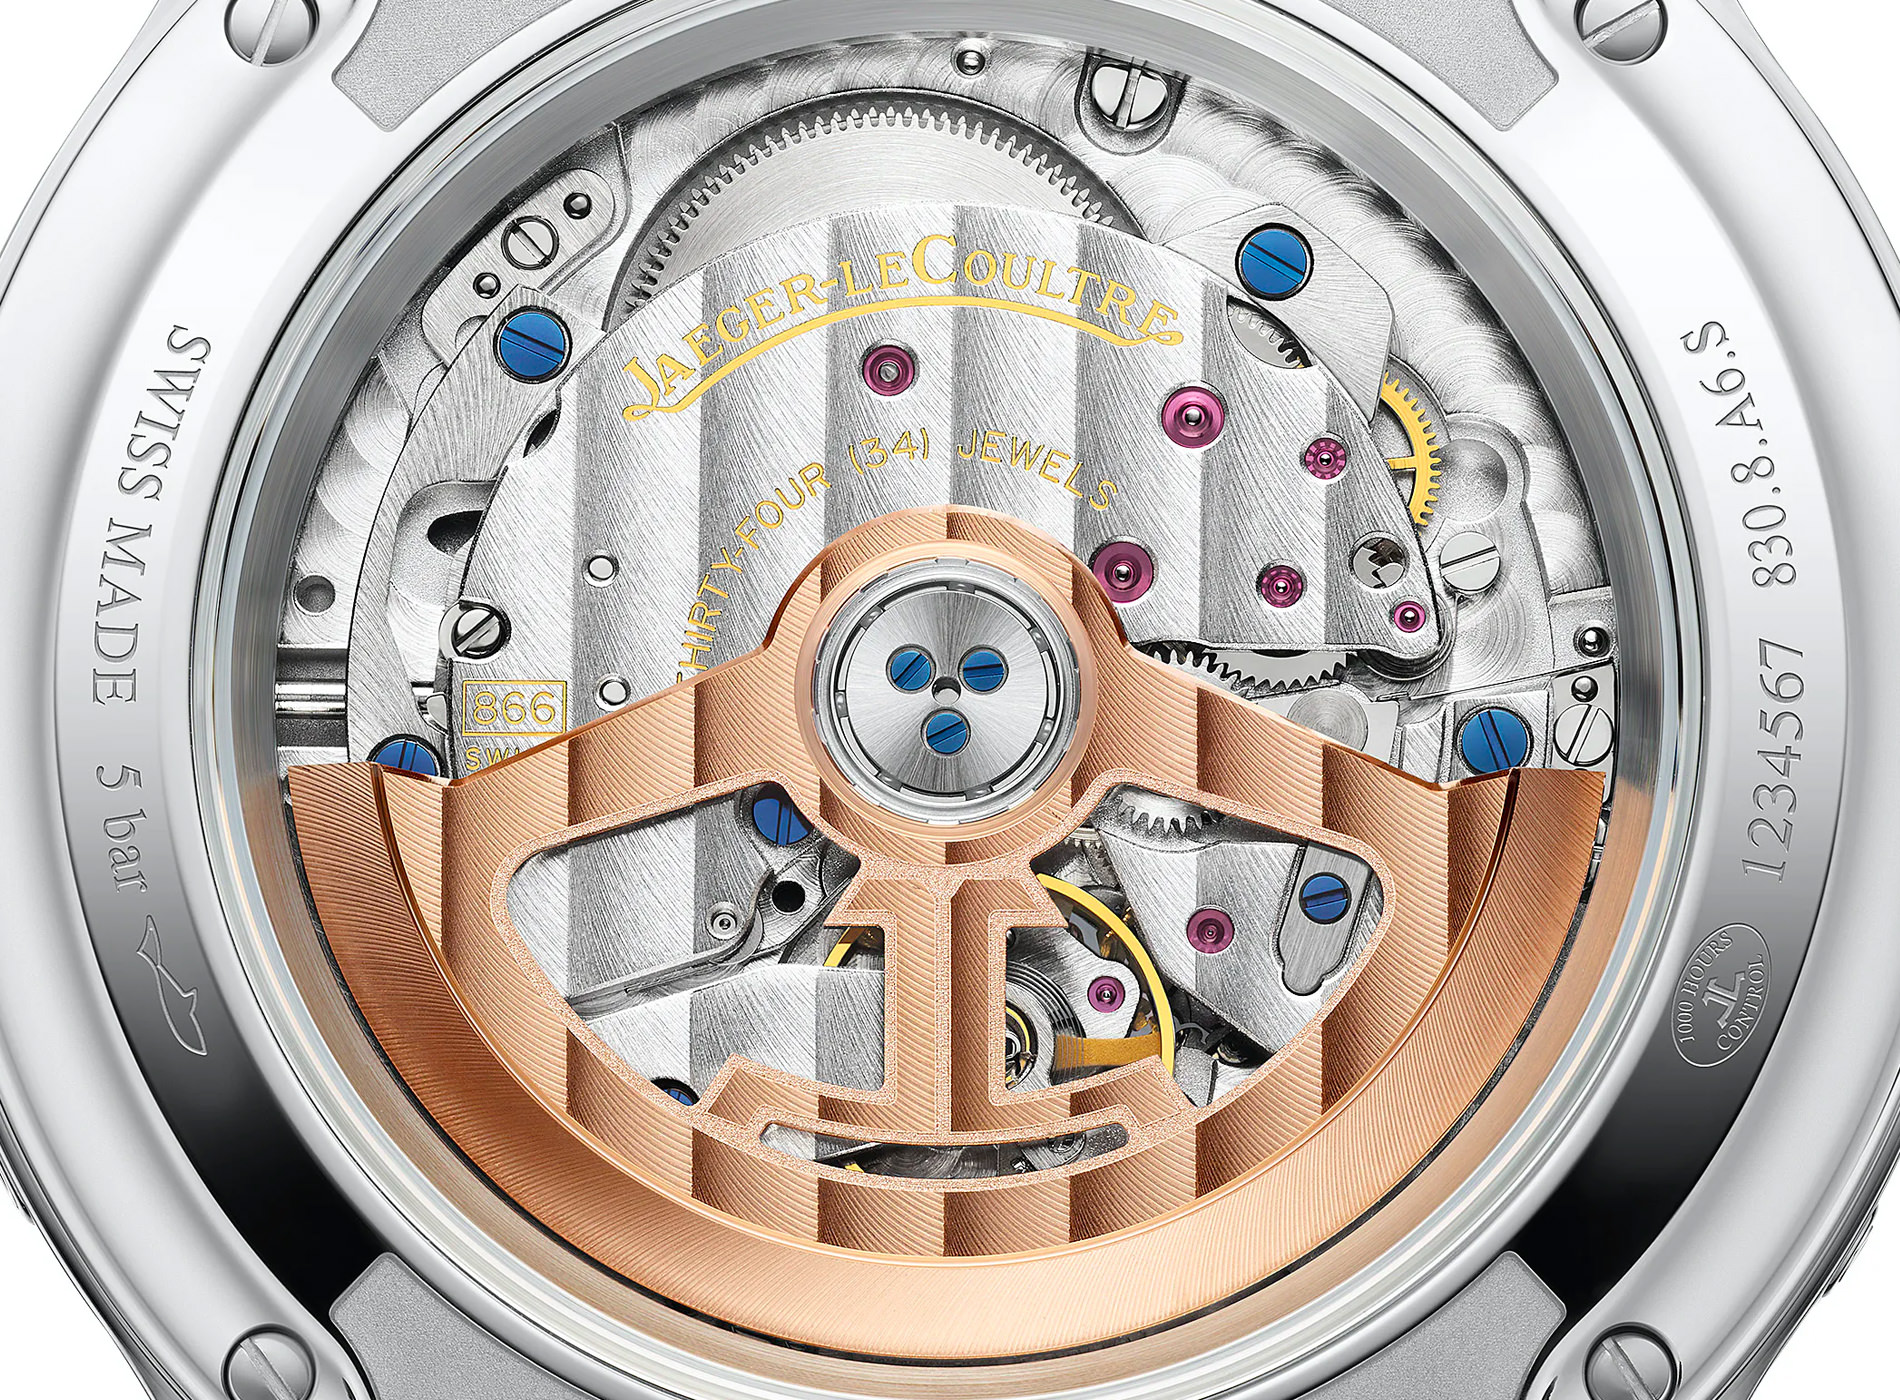 Jaeger-LeCoultre-Master-Control-Calendar-Back-CloseUp-New-Collection